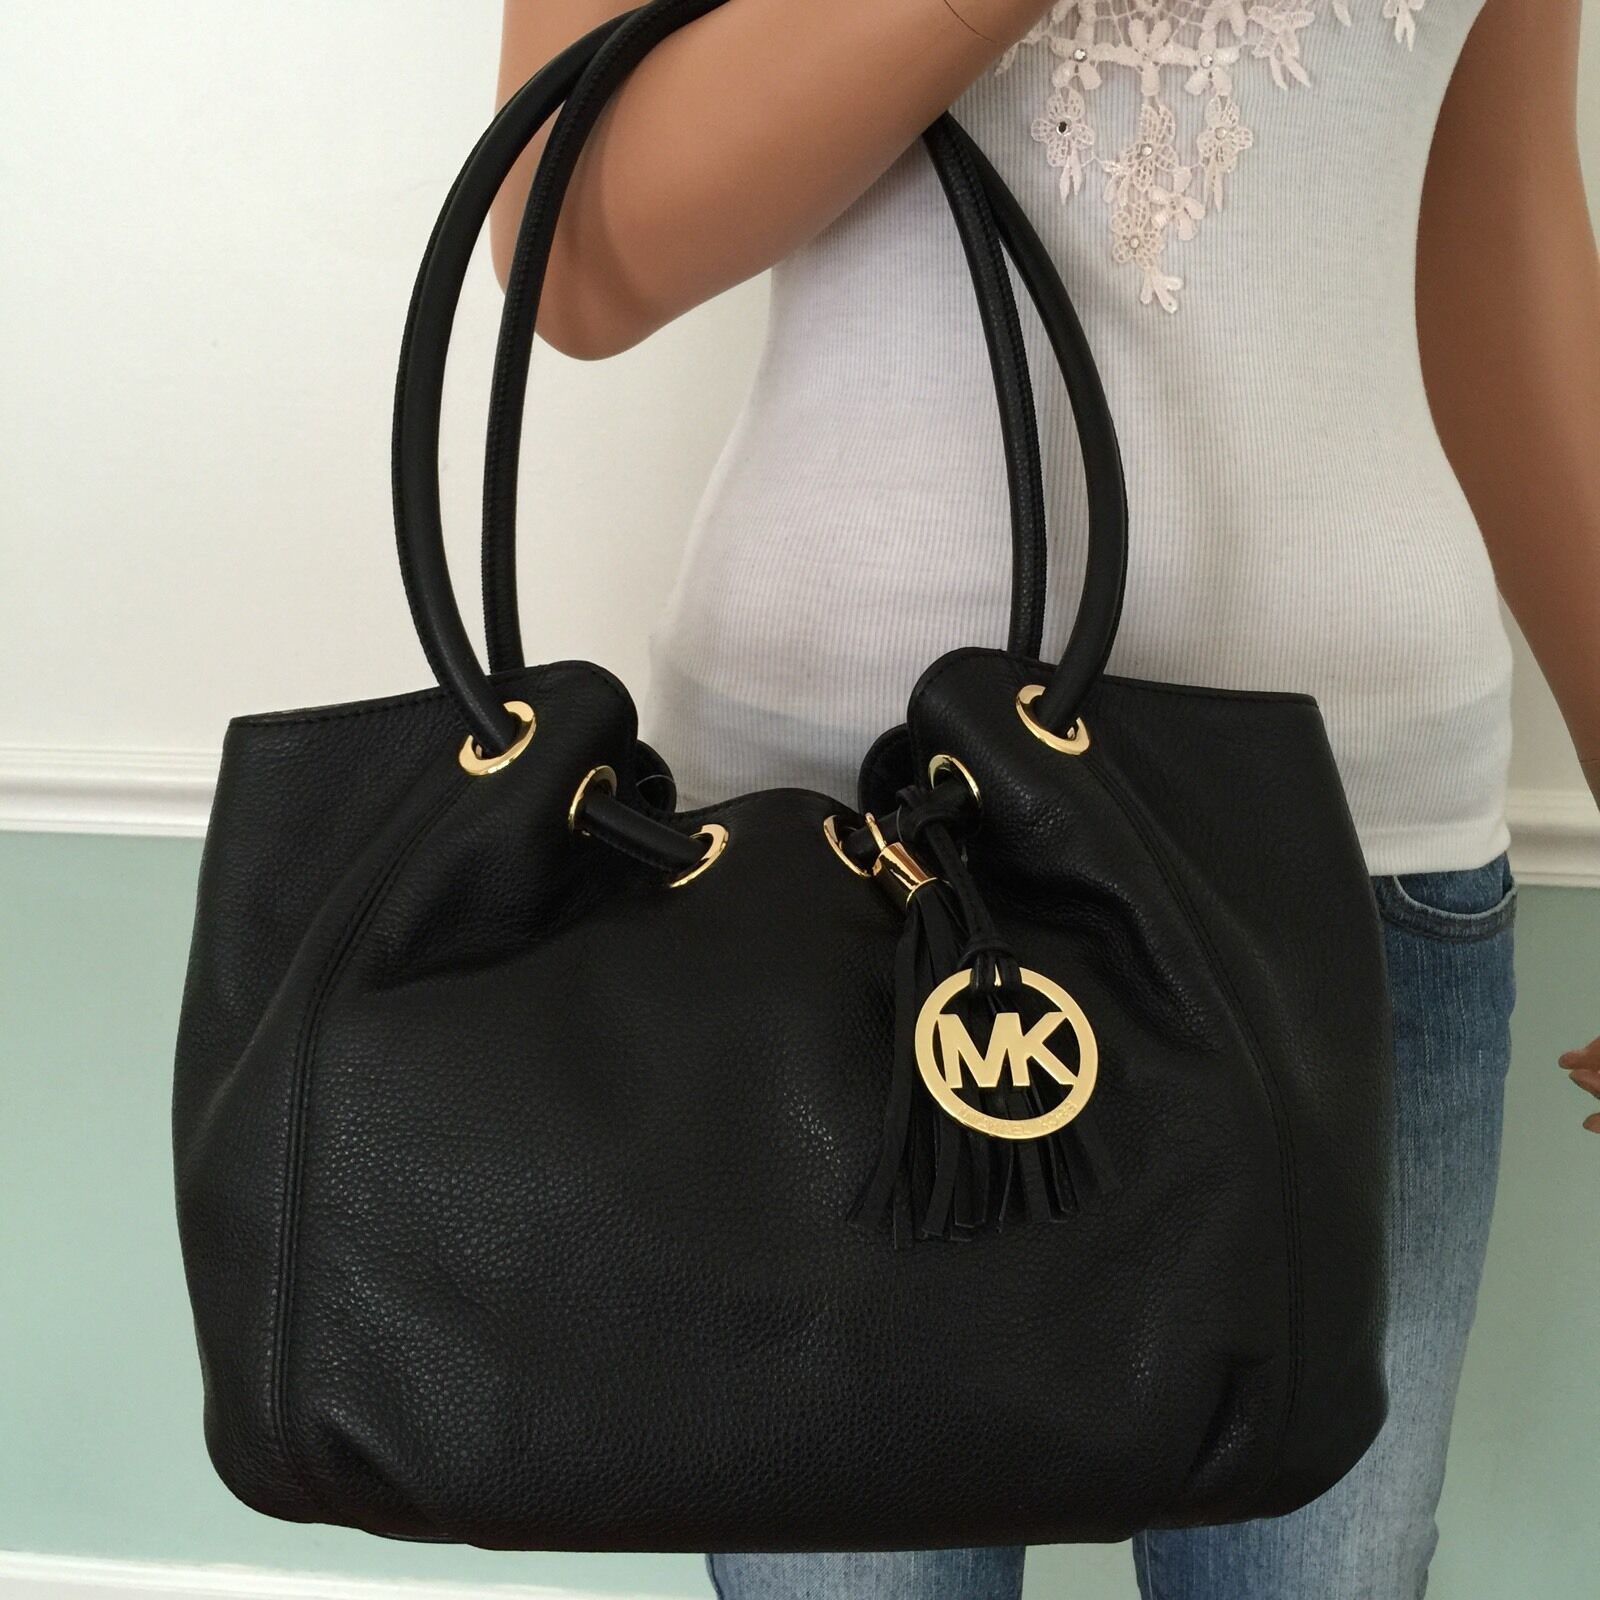 Purse : ... MICHAEL KORS Black Leather Shoulder Bag Ring Tote Purse Handbag eBay